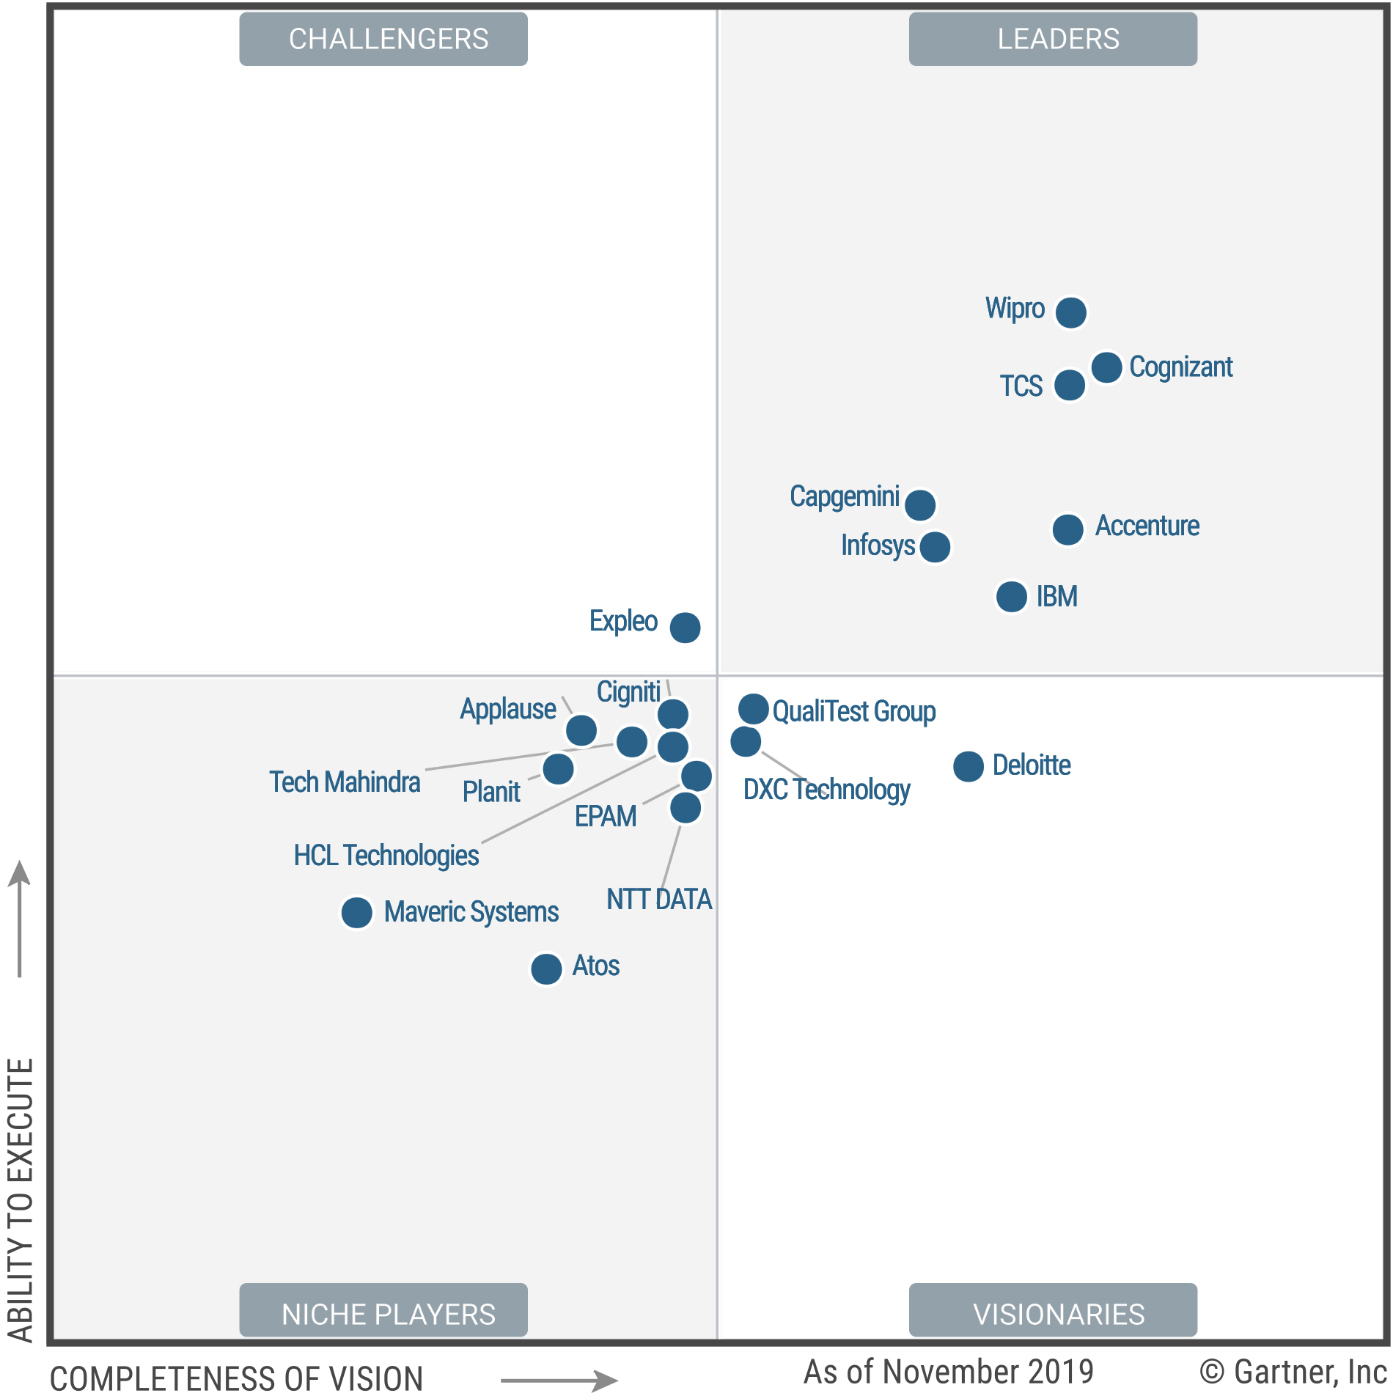 Wipro positioned as a 'Leader' in Gartner Magic Quadrant for Application Testing Services, Worldwide 2019